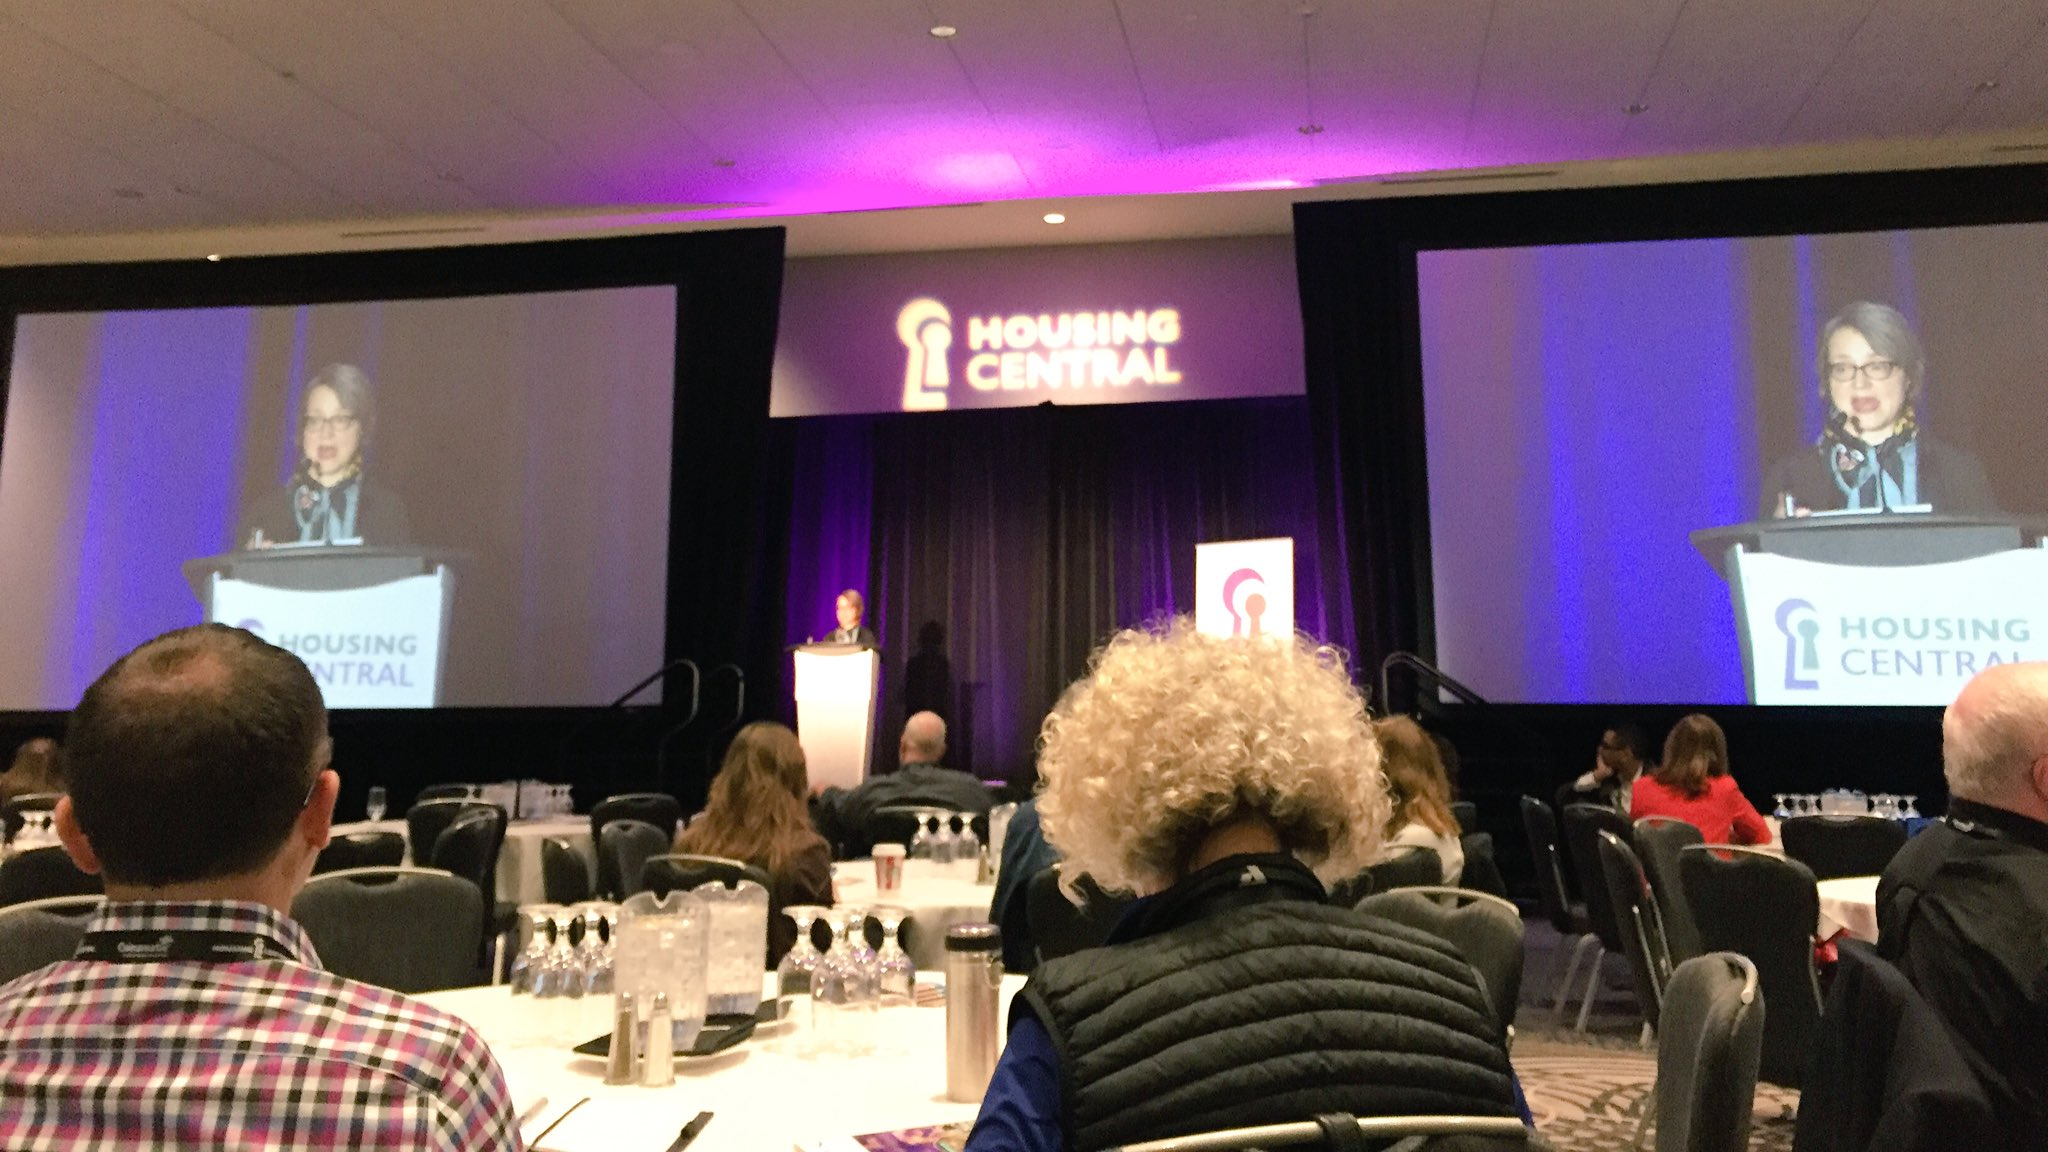 """Housing is a global challenge, and a partnership with @RooftopsCanada helps that divide"". - @jfatkey #HousingCentral https://t.co/hCATwsQjeL"